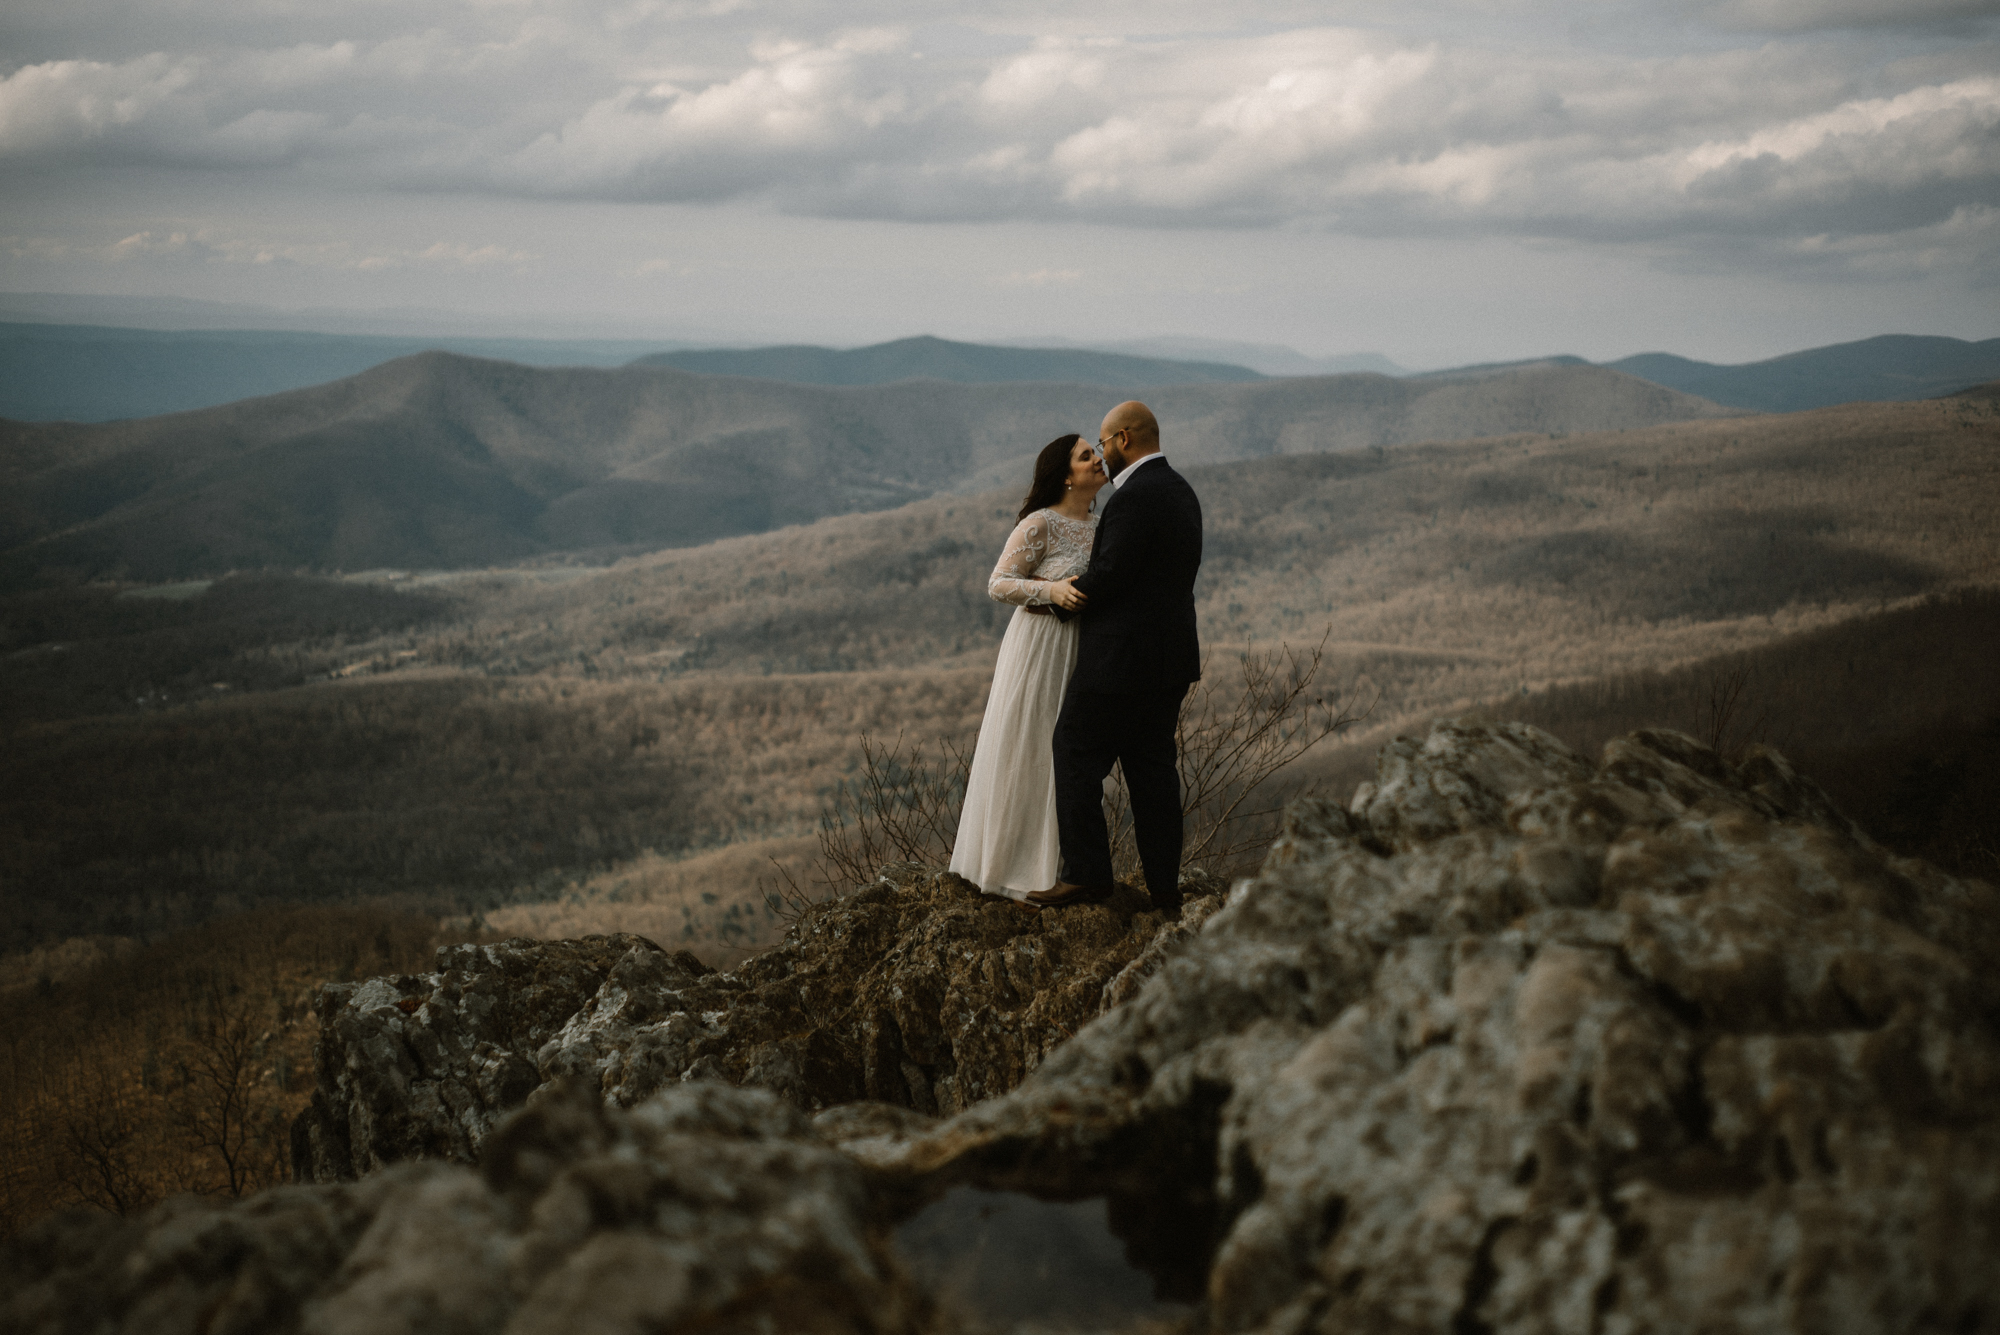 Emma and Jeddah - Intimate Luray Wedding - Shenandoah National Park Wedding - Adventure Elopement in Virginia - Shenandoah National Park Elopement_52.jpg